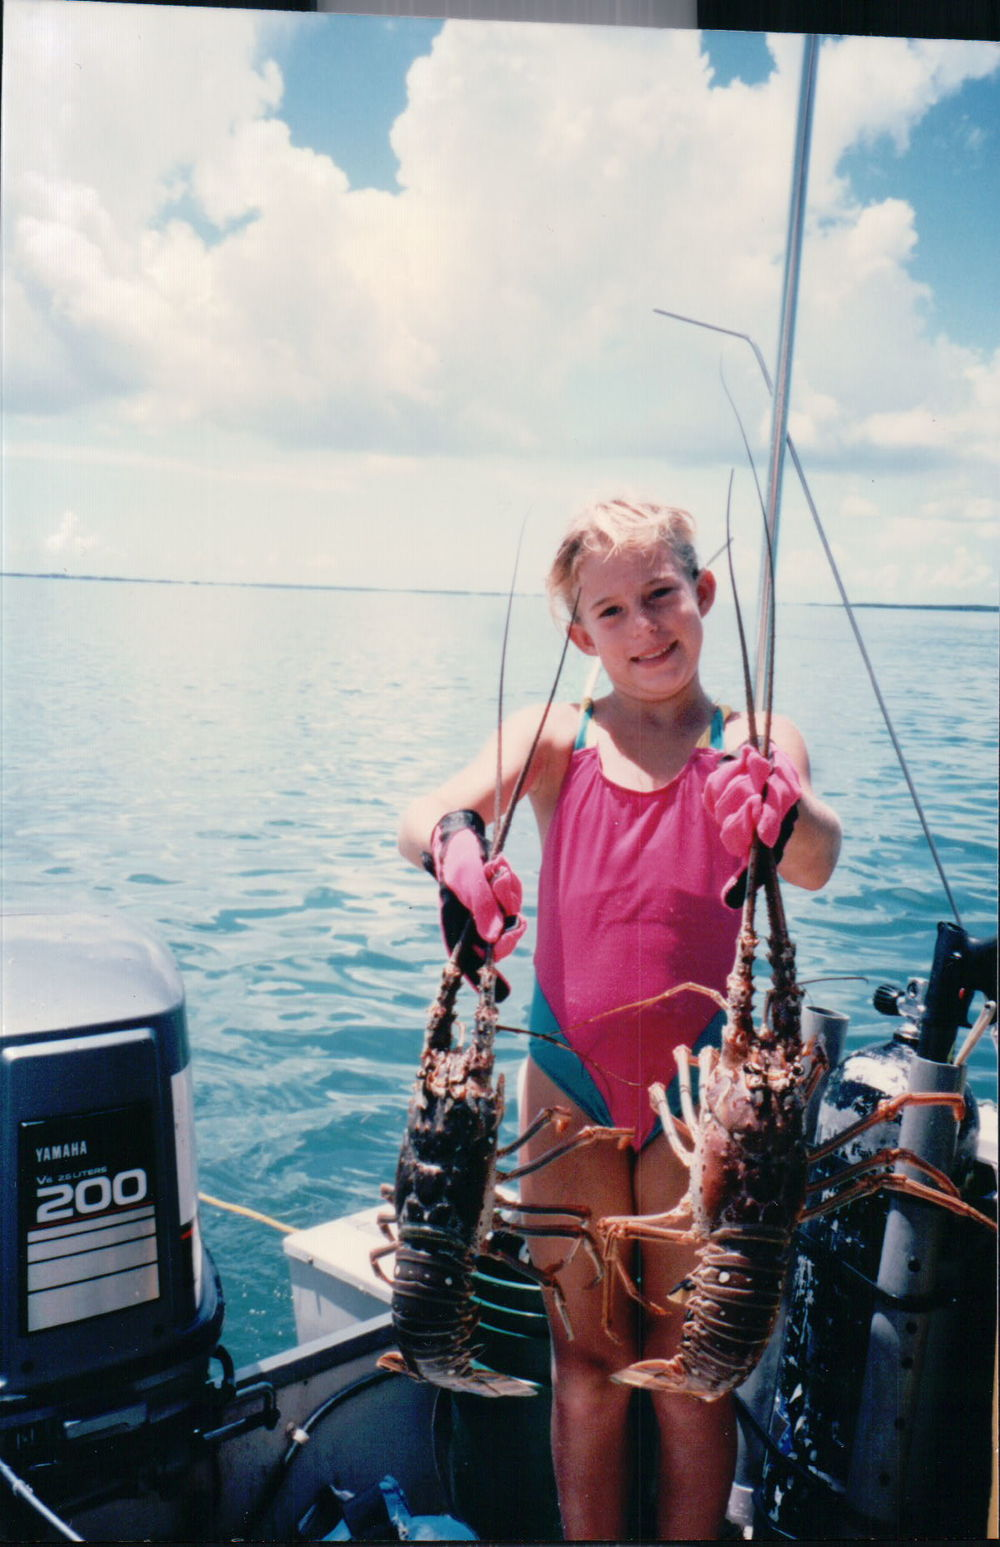 Getting bigger by the minute and getting better at lobstering in the Keys.